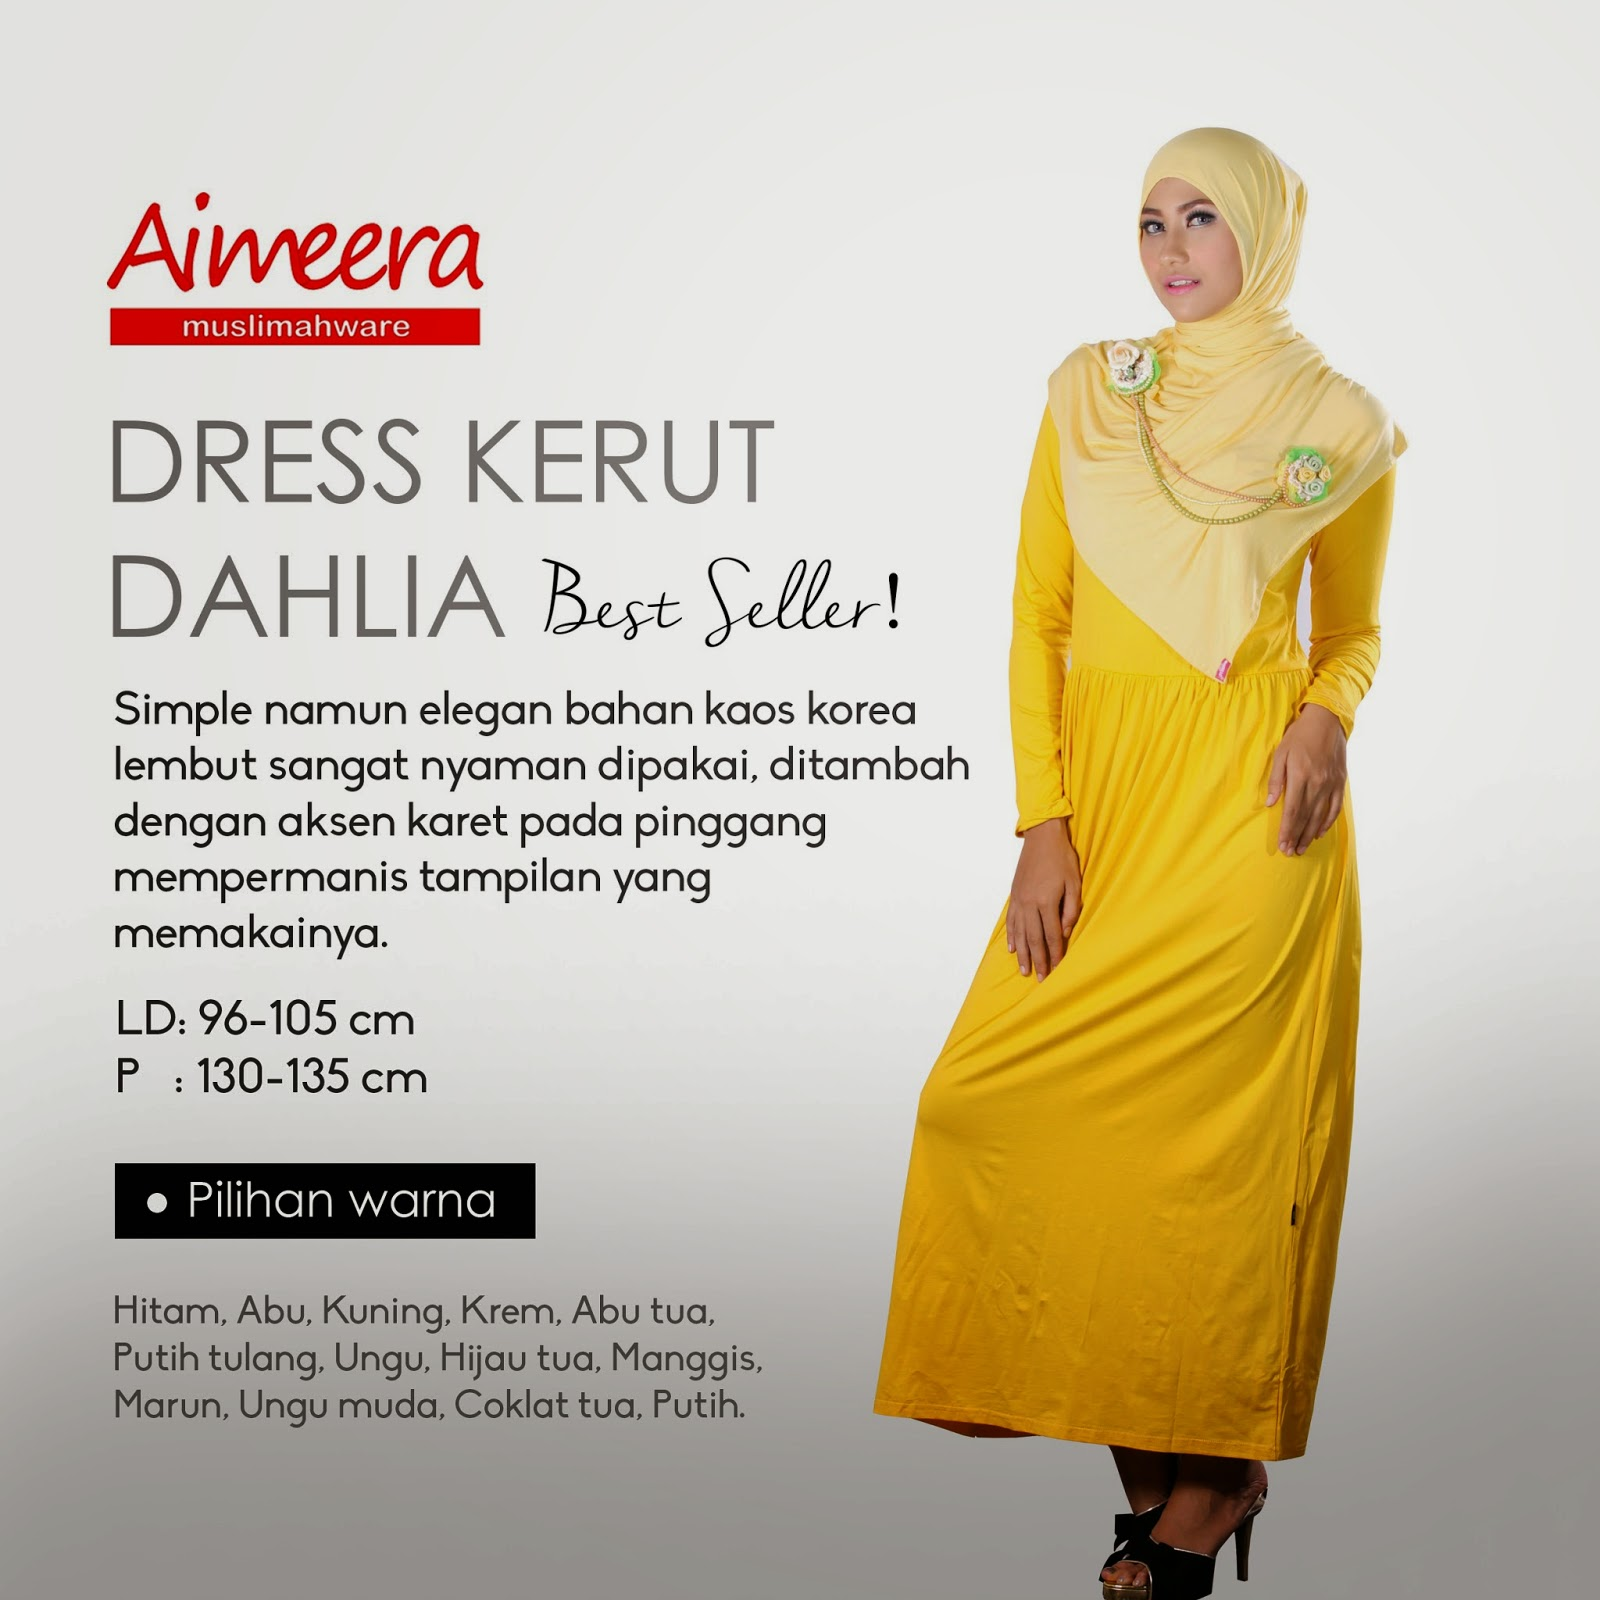 Dress Kerut Dahlia